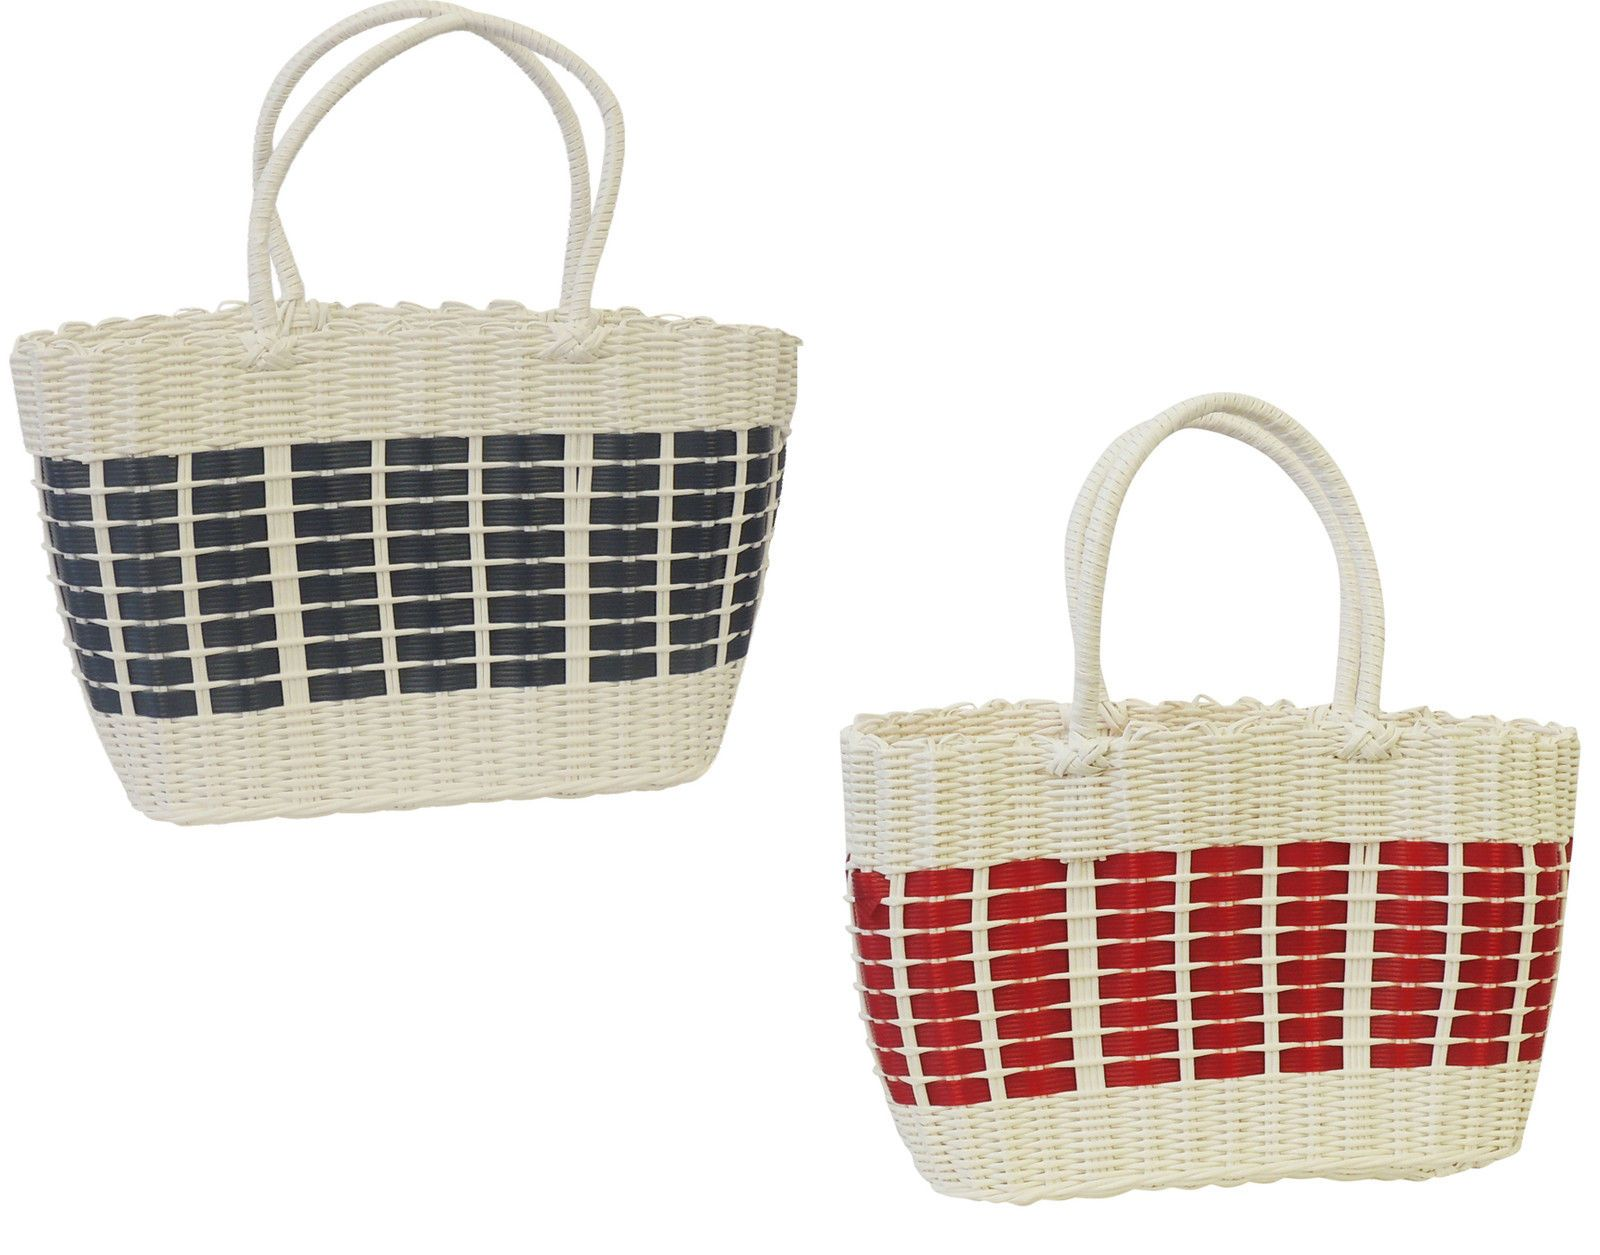 Red plastic picnic basket : New retro s style white red blue plastic beach